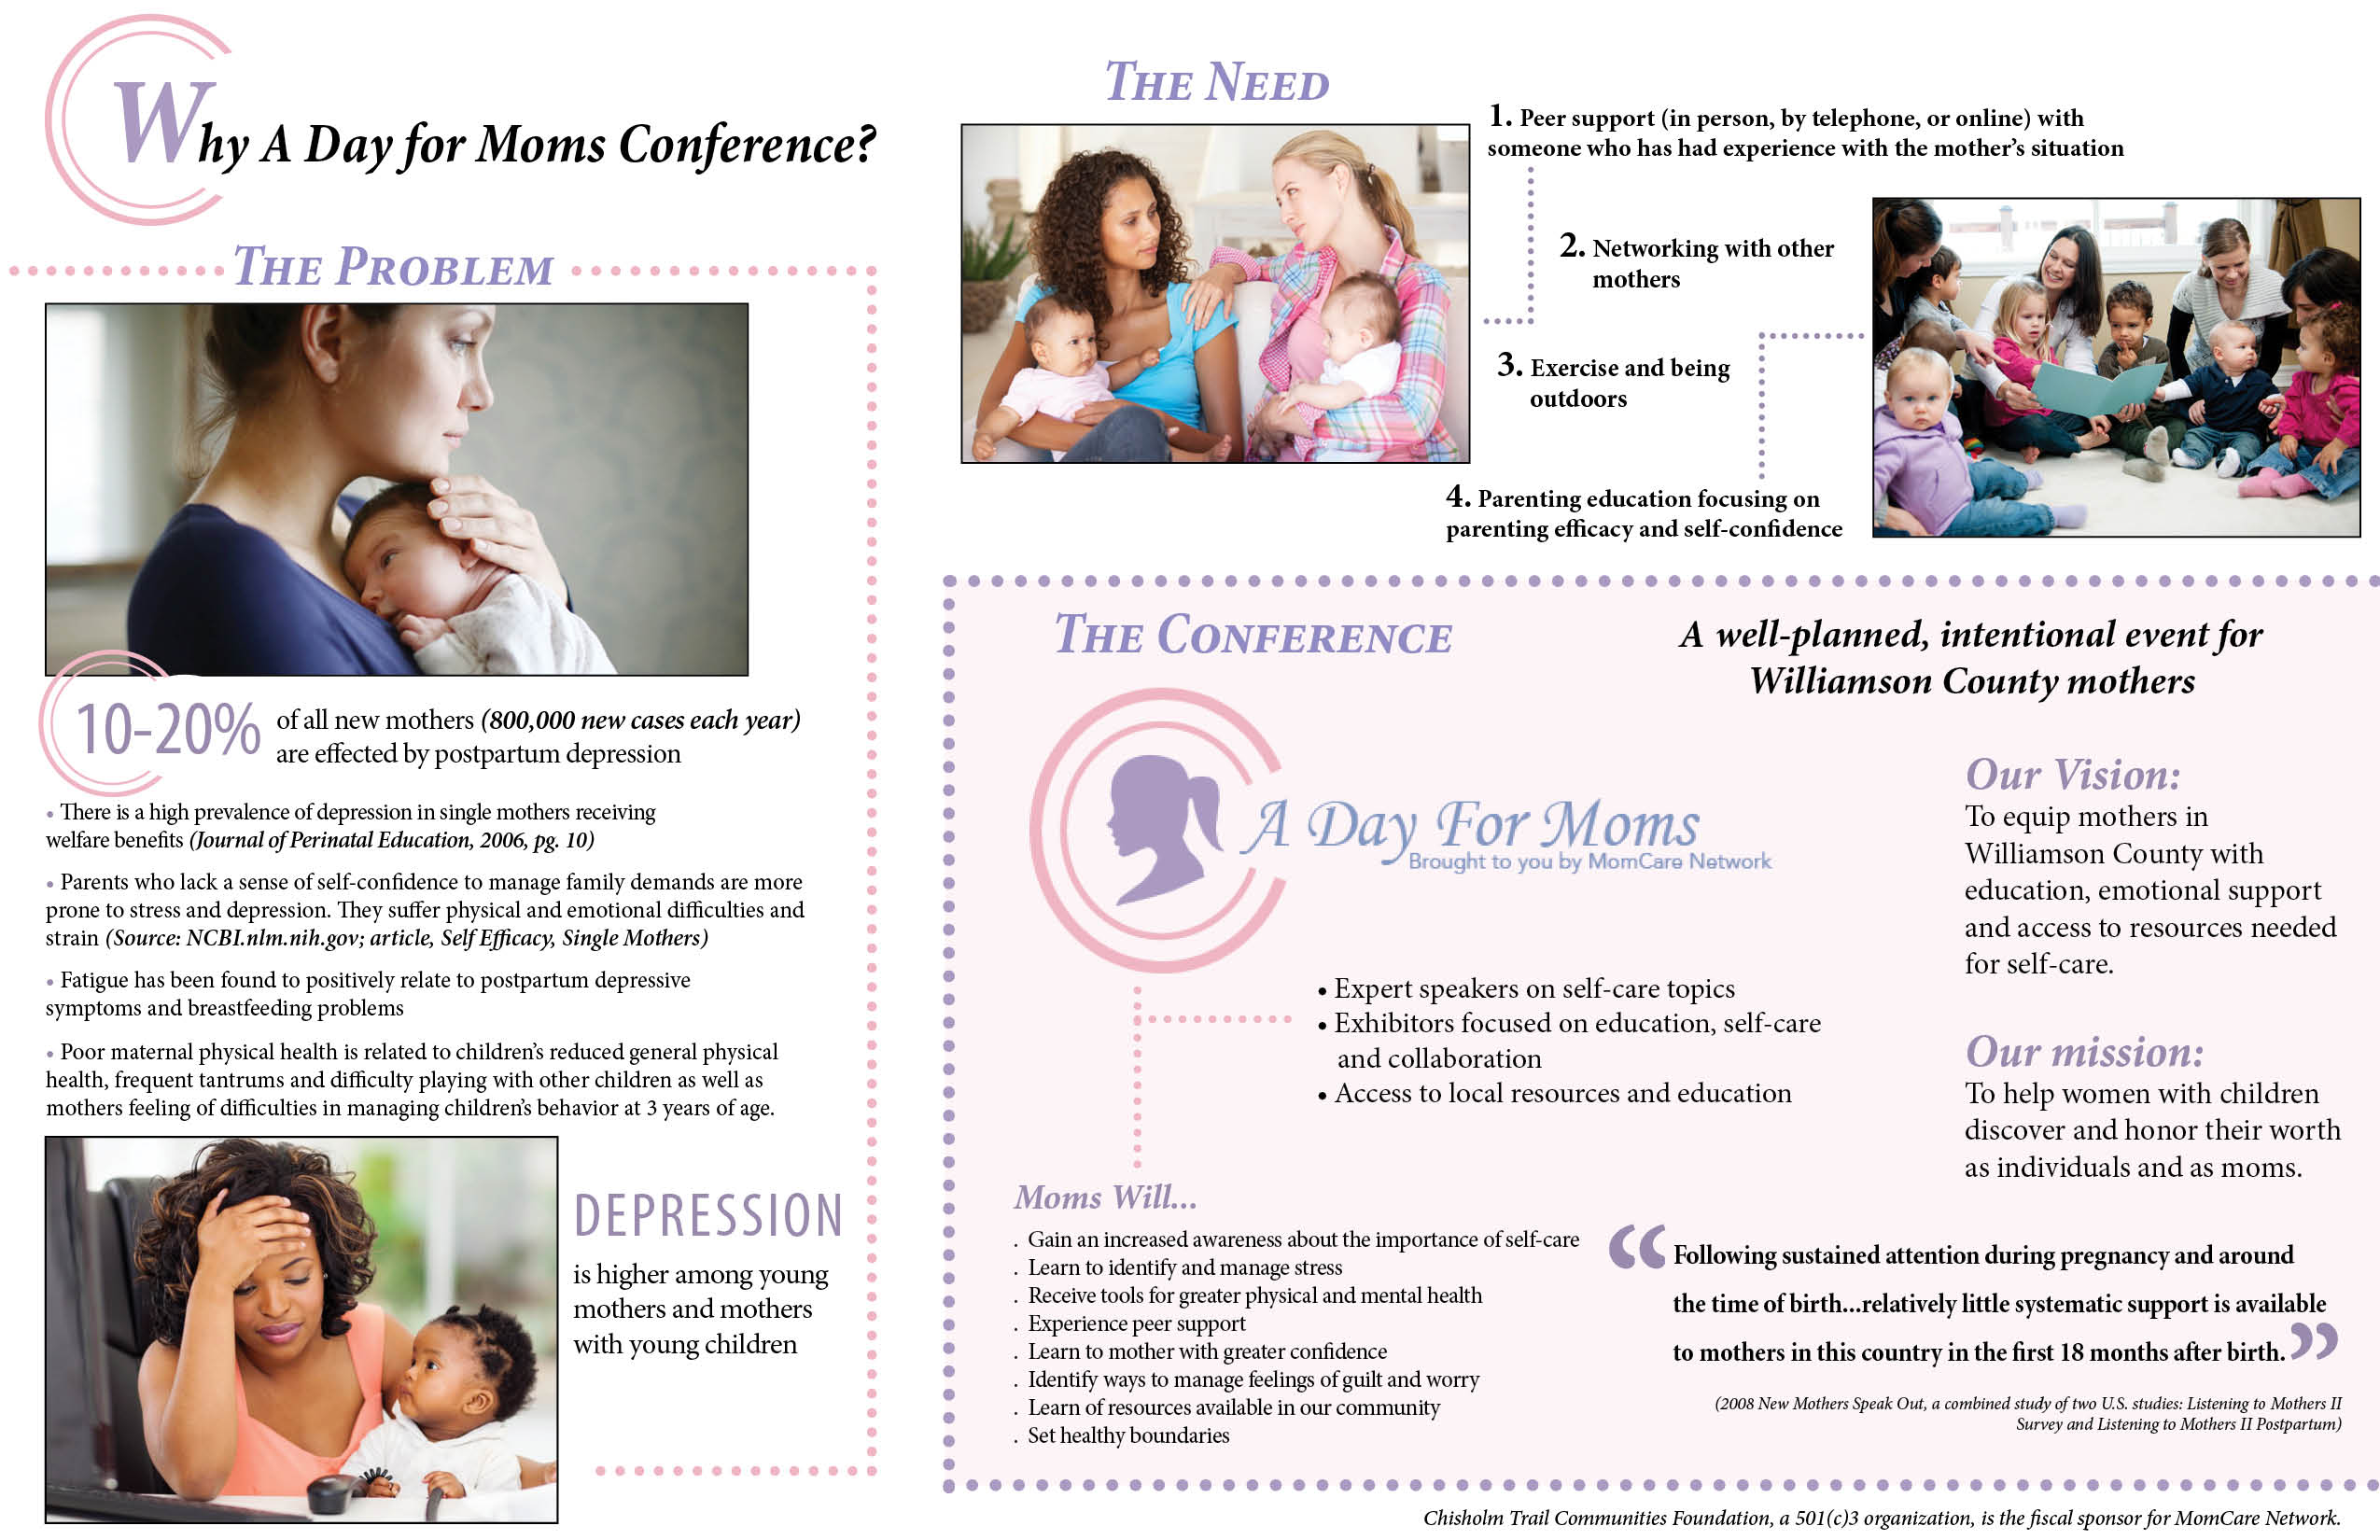 A Day for Moms Case for Support graphic